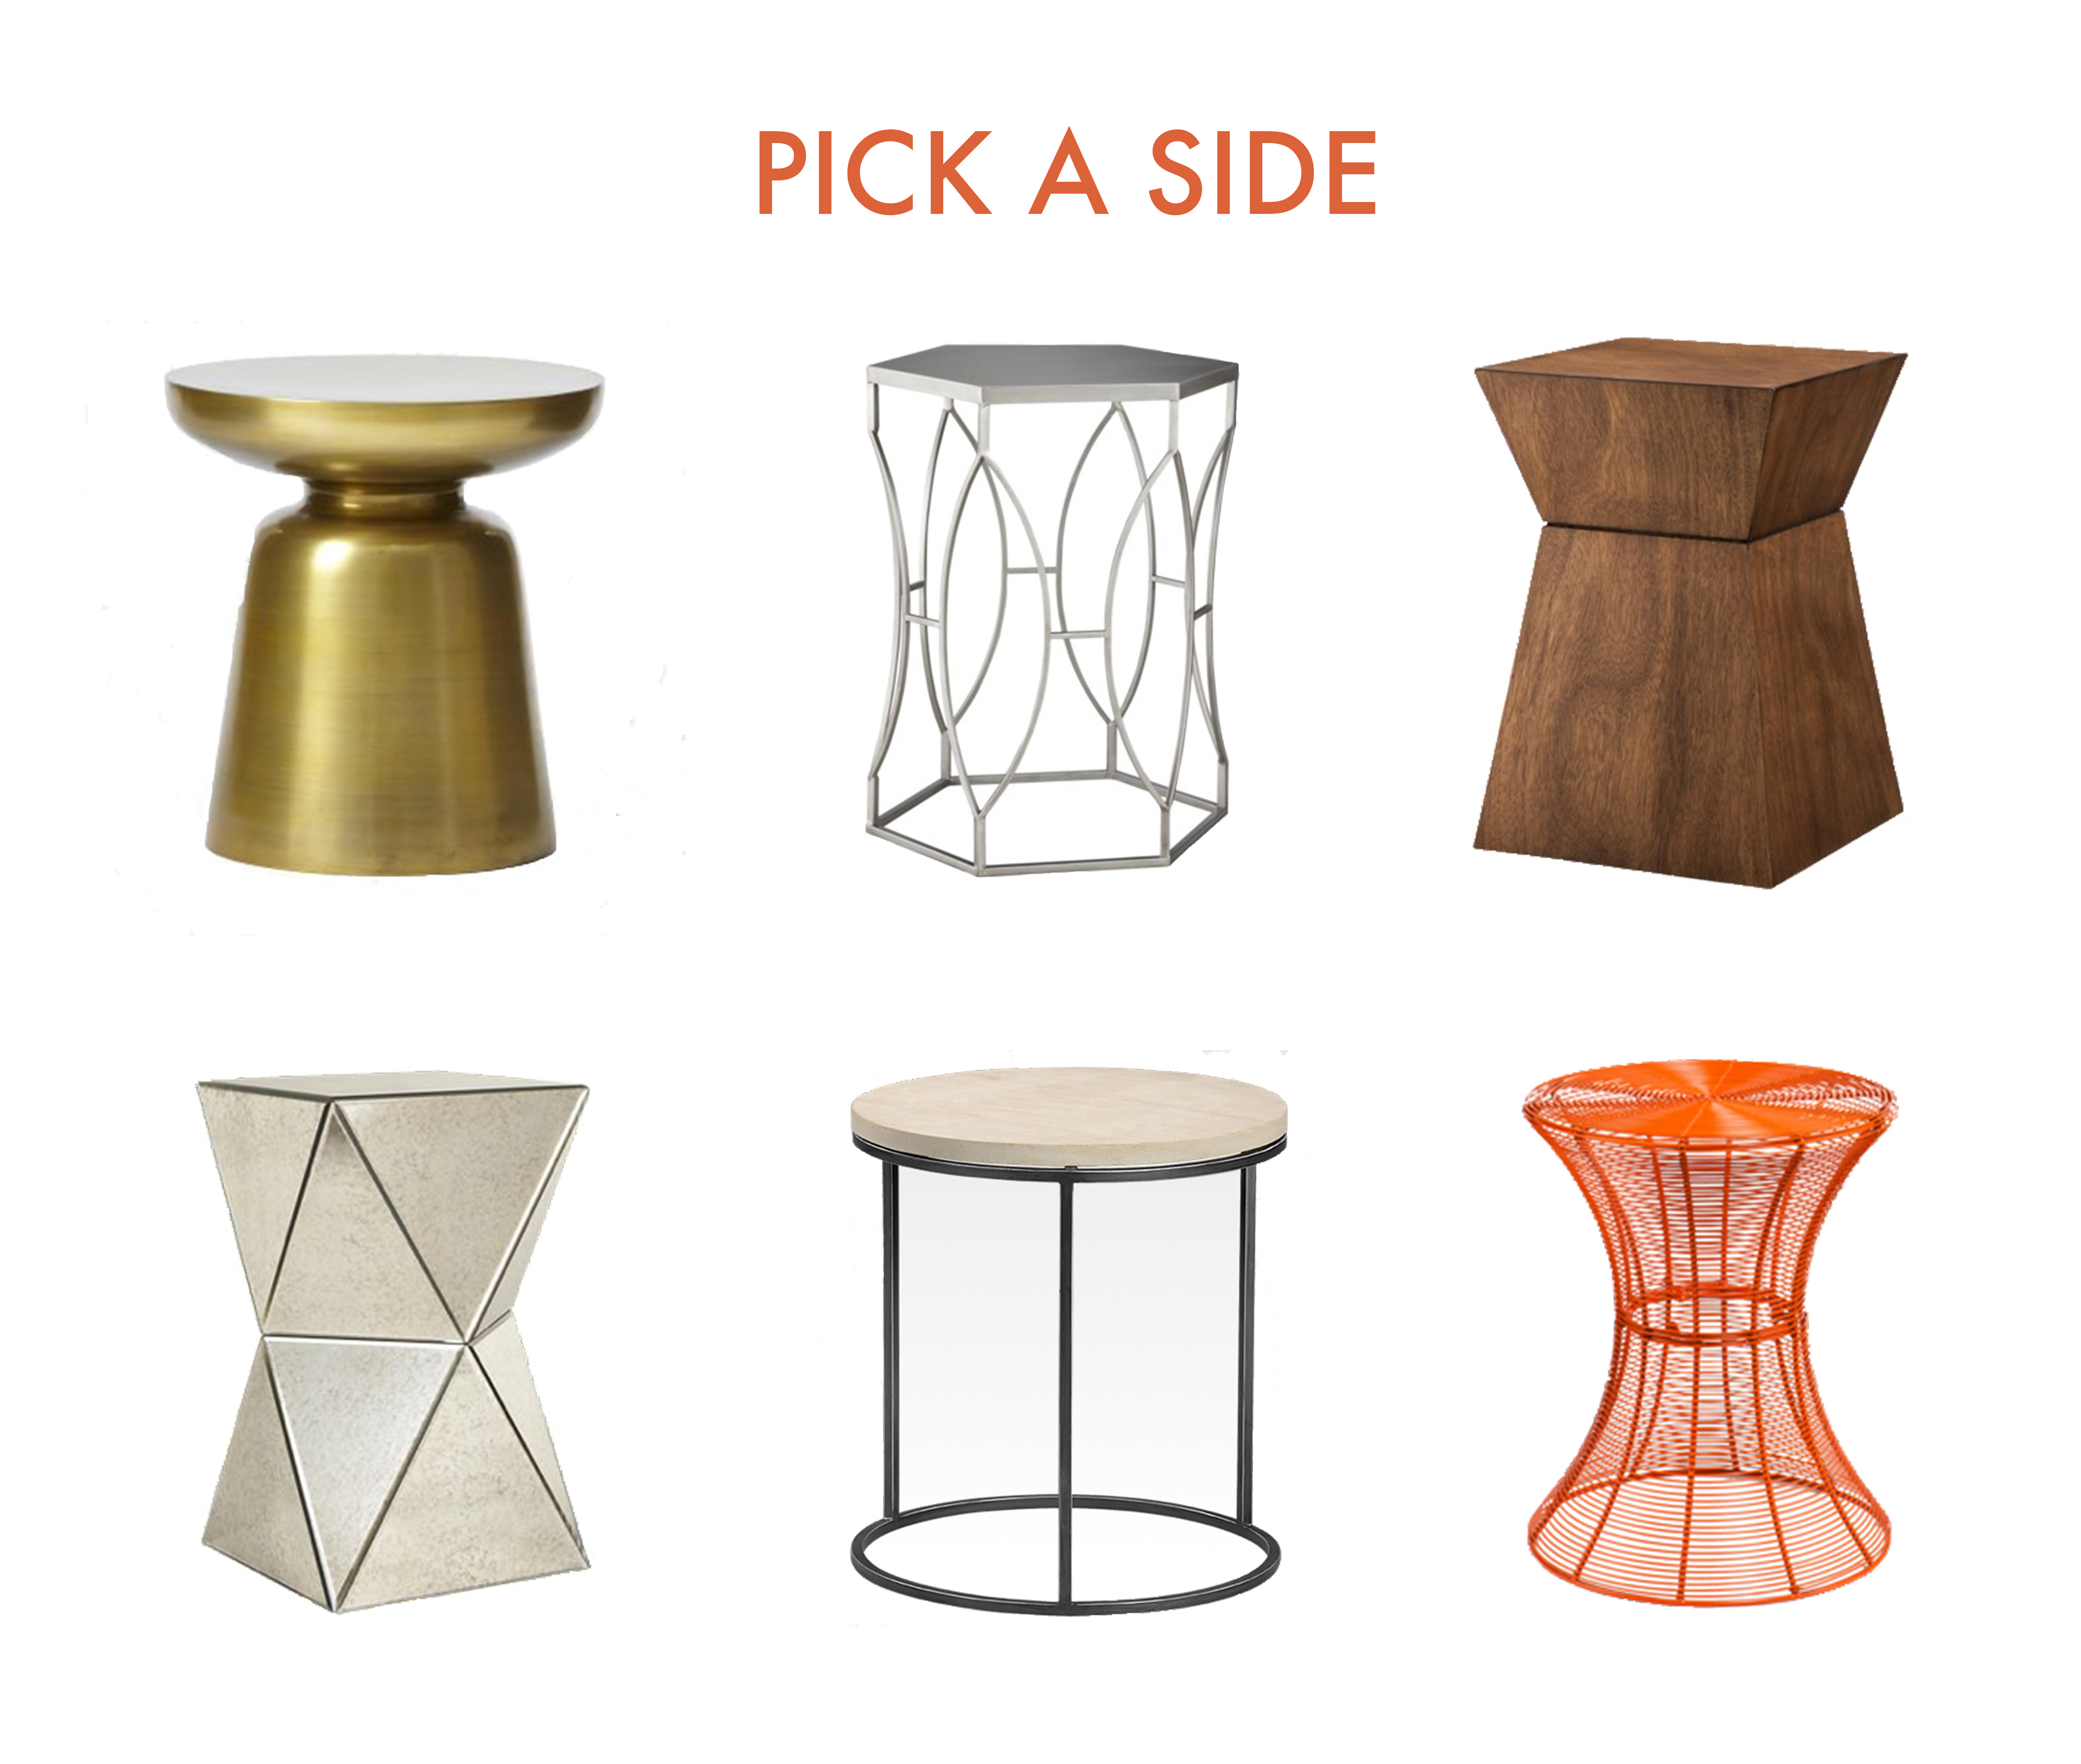 side table for every occasion scout and arrow sidetables threshold metal accent clip desk lamp diy end ideas pair bedside lamps cordless floor home inch nightstand acrylic leick